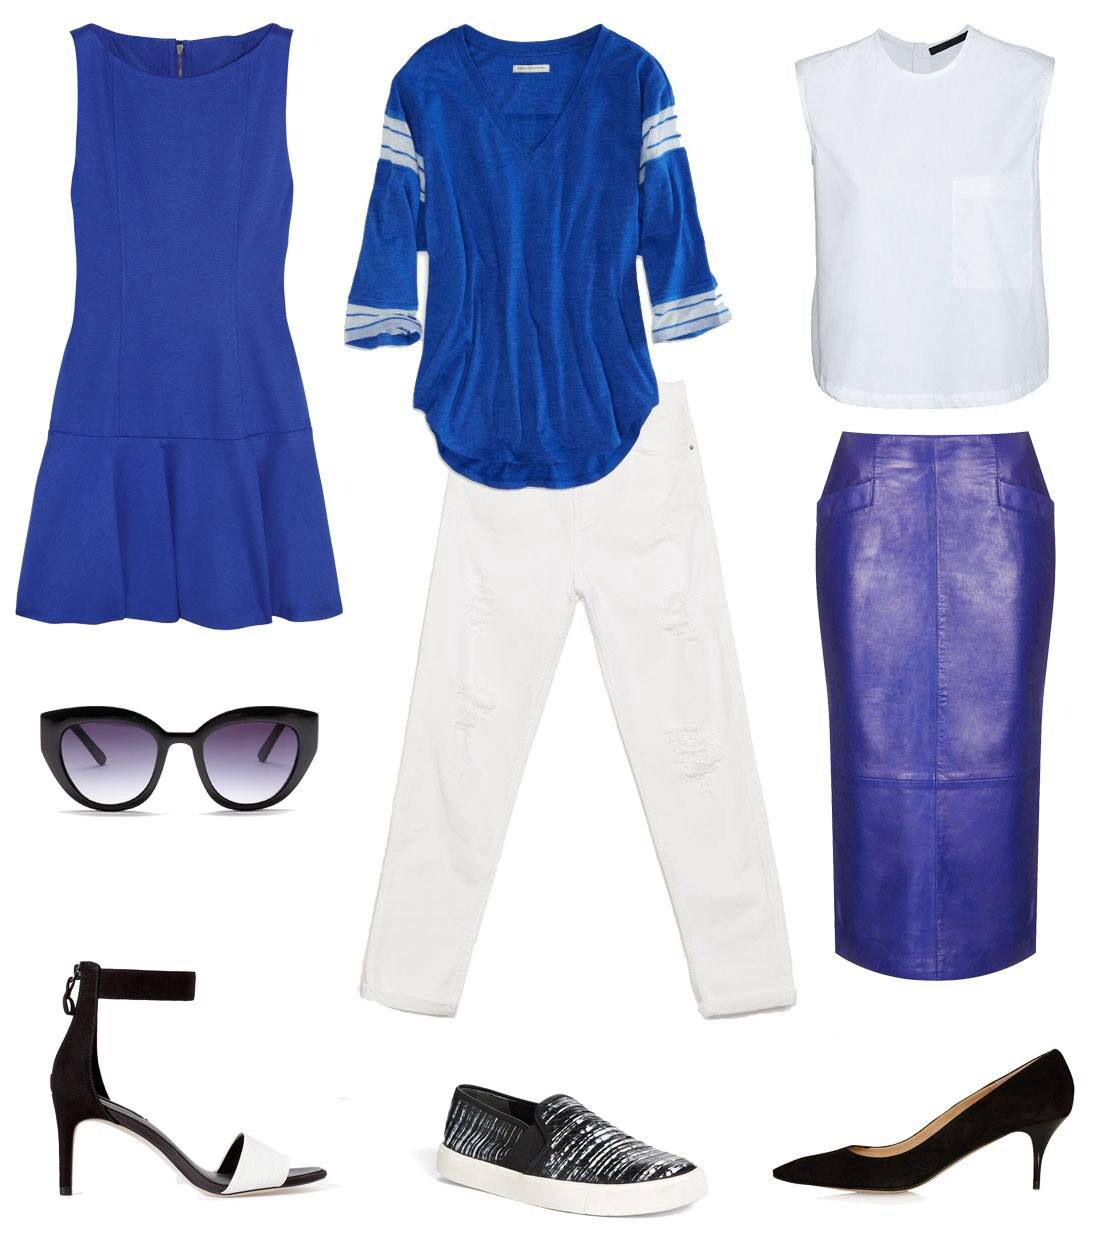 Royal blue and white combinations.